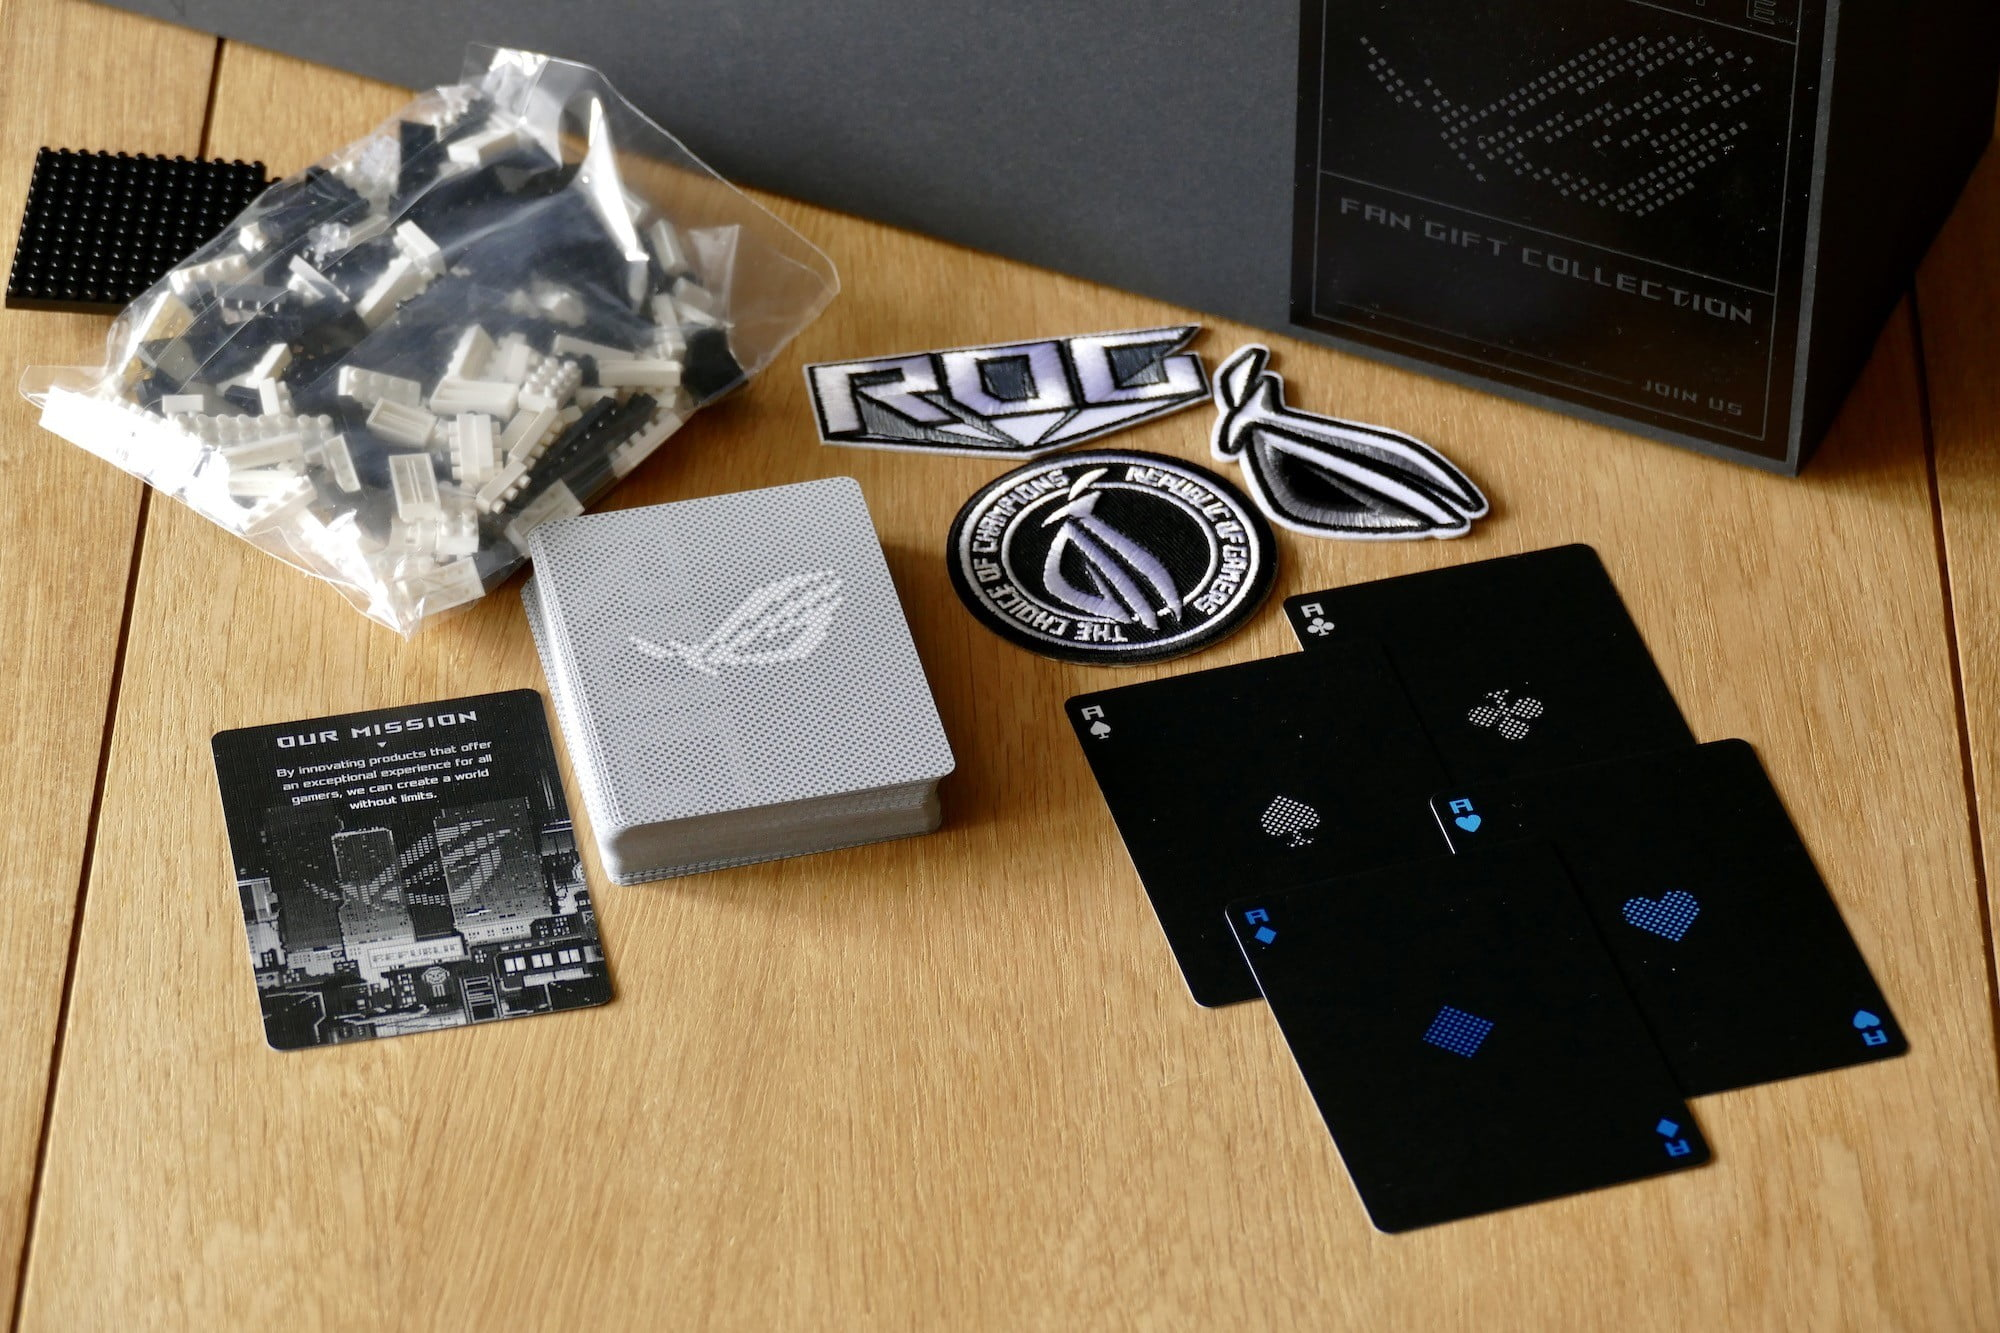 asus rog phone 5 ultimate fan gift package gifts